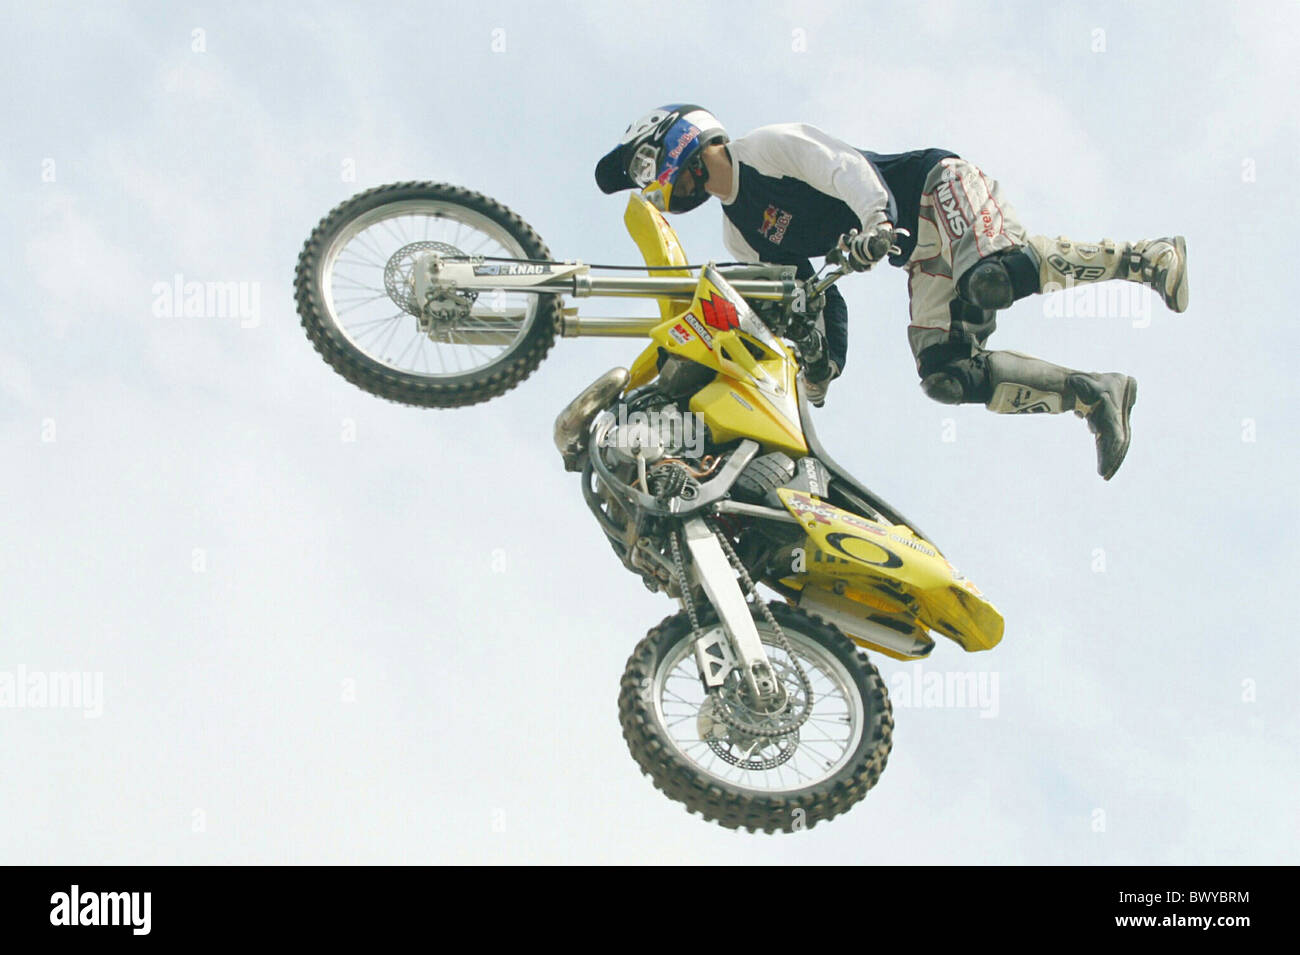 action fmx freestyle jump man moto cross motor sport motorbike stock photo royalty free image. Black Bedroom Furniture Sets. Home Design Ideas